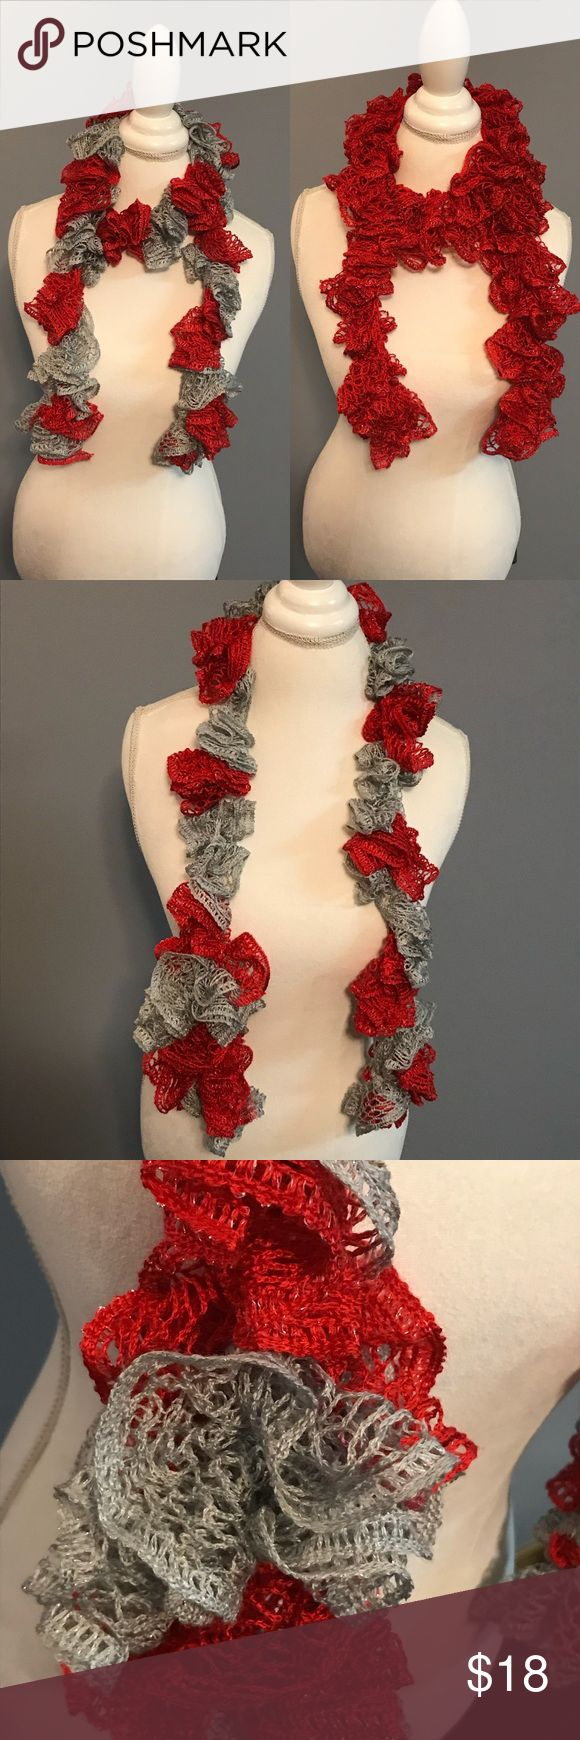 "Handmade scarves bundle Two stylish, fun handmade scarves. One is red and gray with silver sparkly threads running through the yard. The other is red with silver sparkly threads. Each measure approximately 60"" long. Excellent used condition. Accessories Scarves & Wraps"